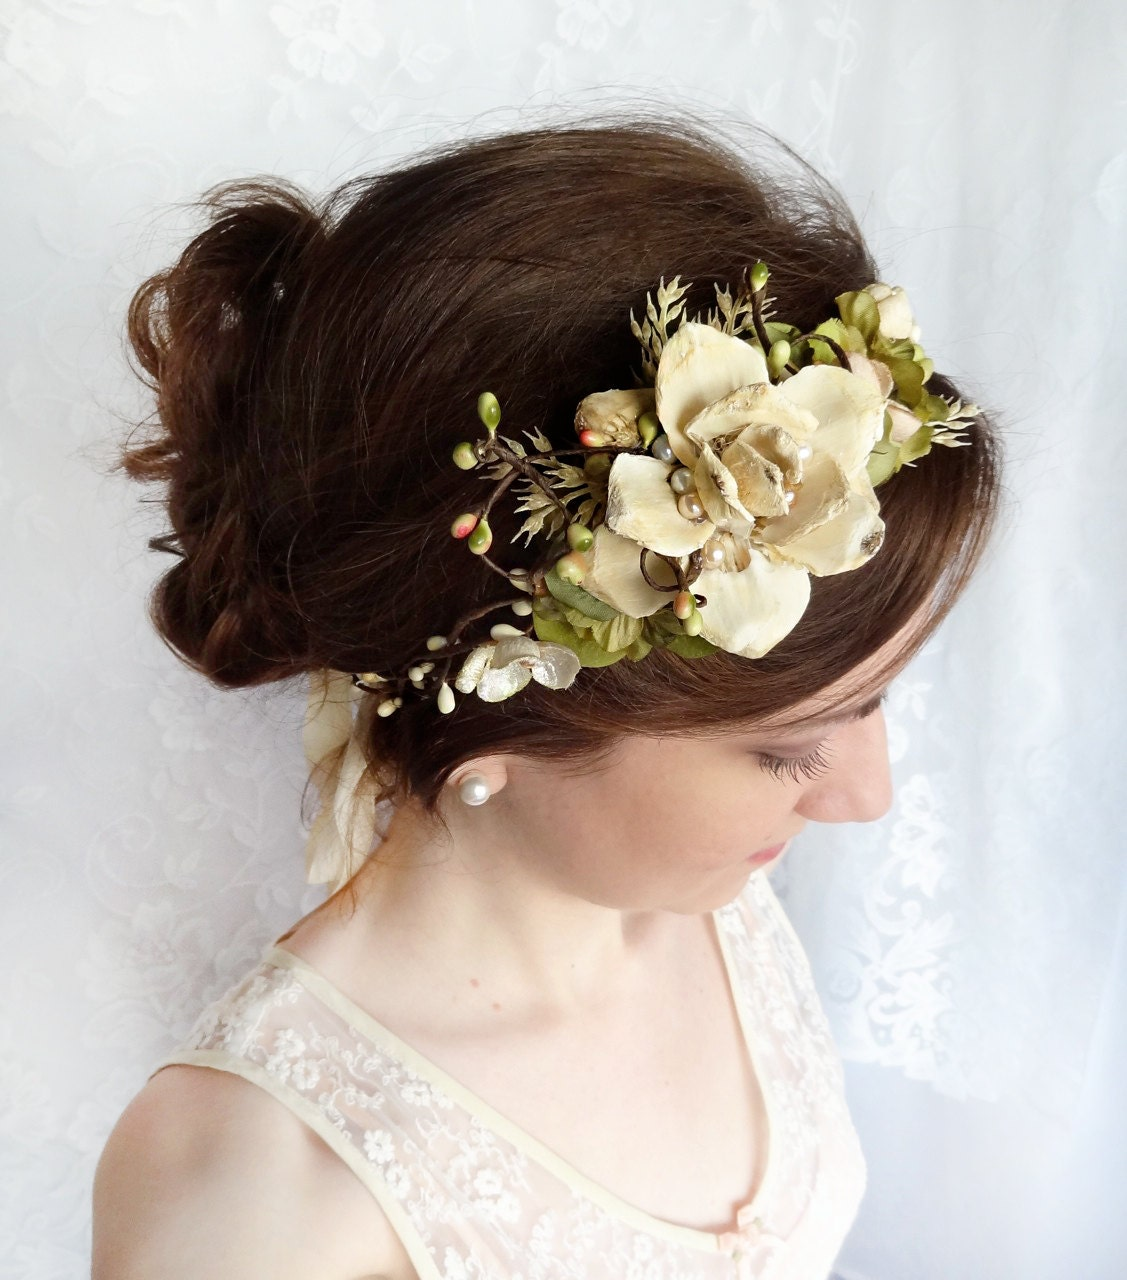 Wedding Flower Headpieces: Woodland Wedding Headpiece Cream Flower Champagne Wedding